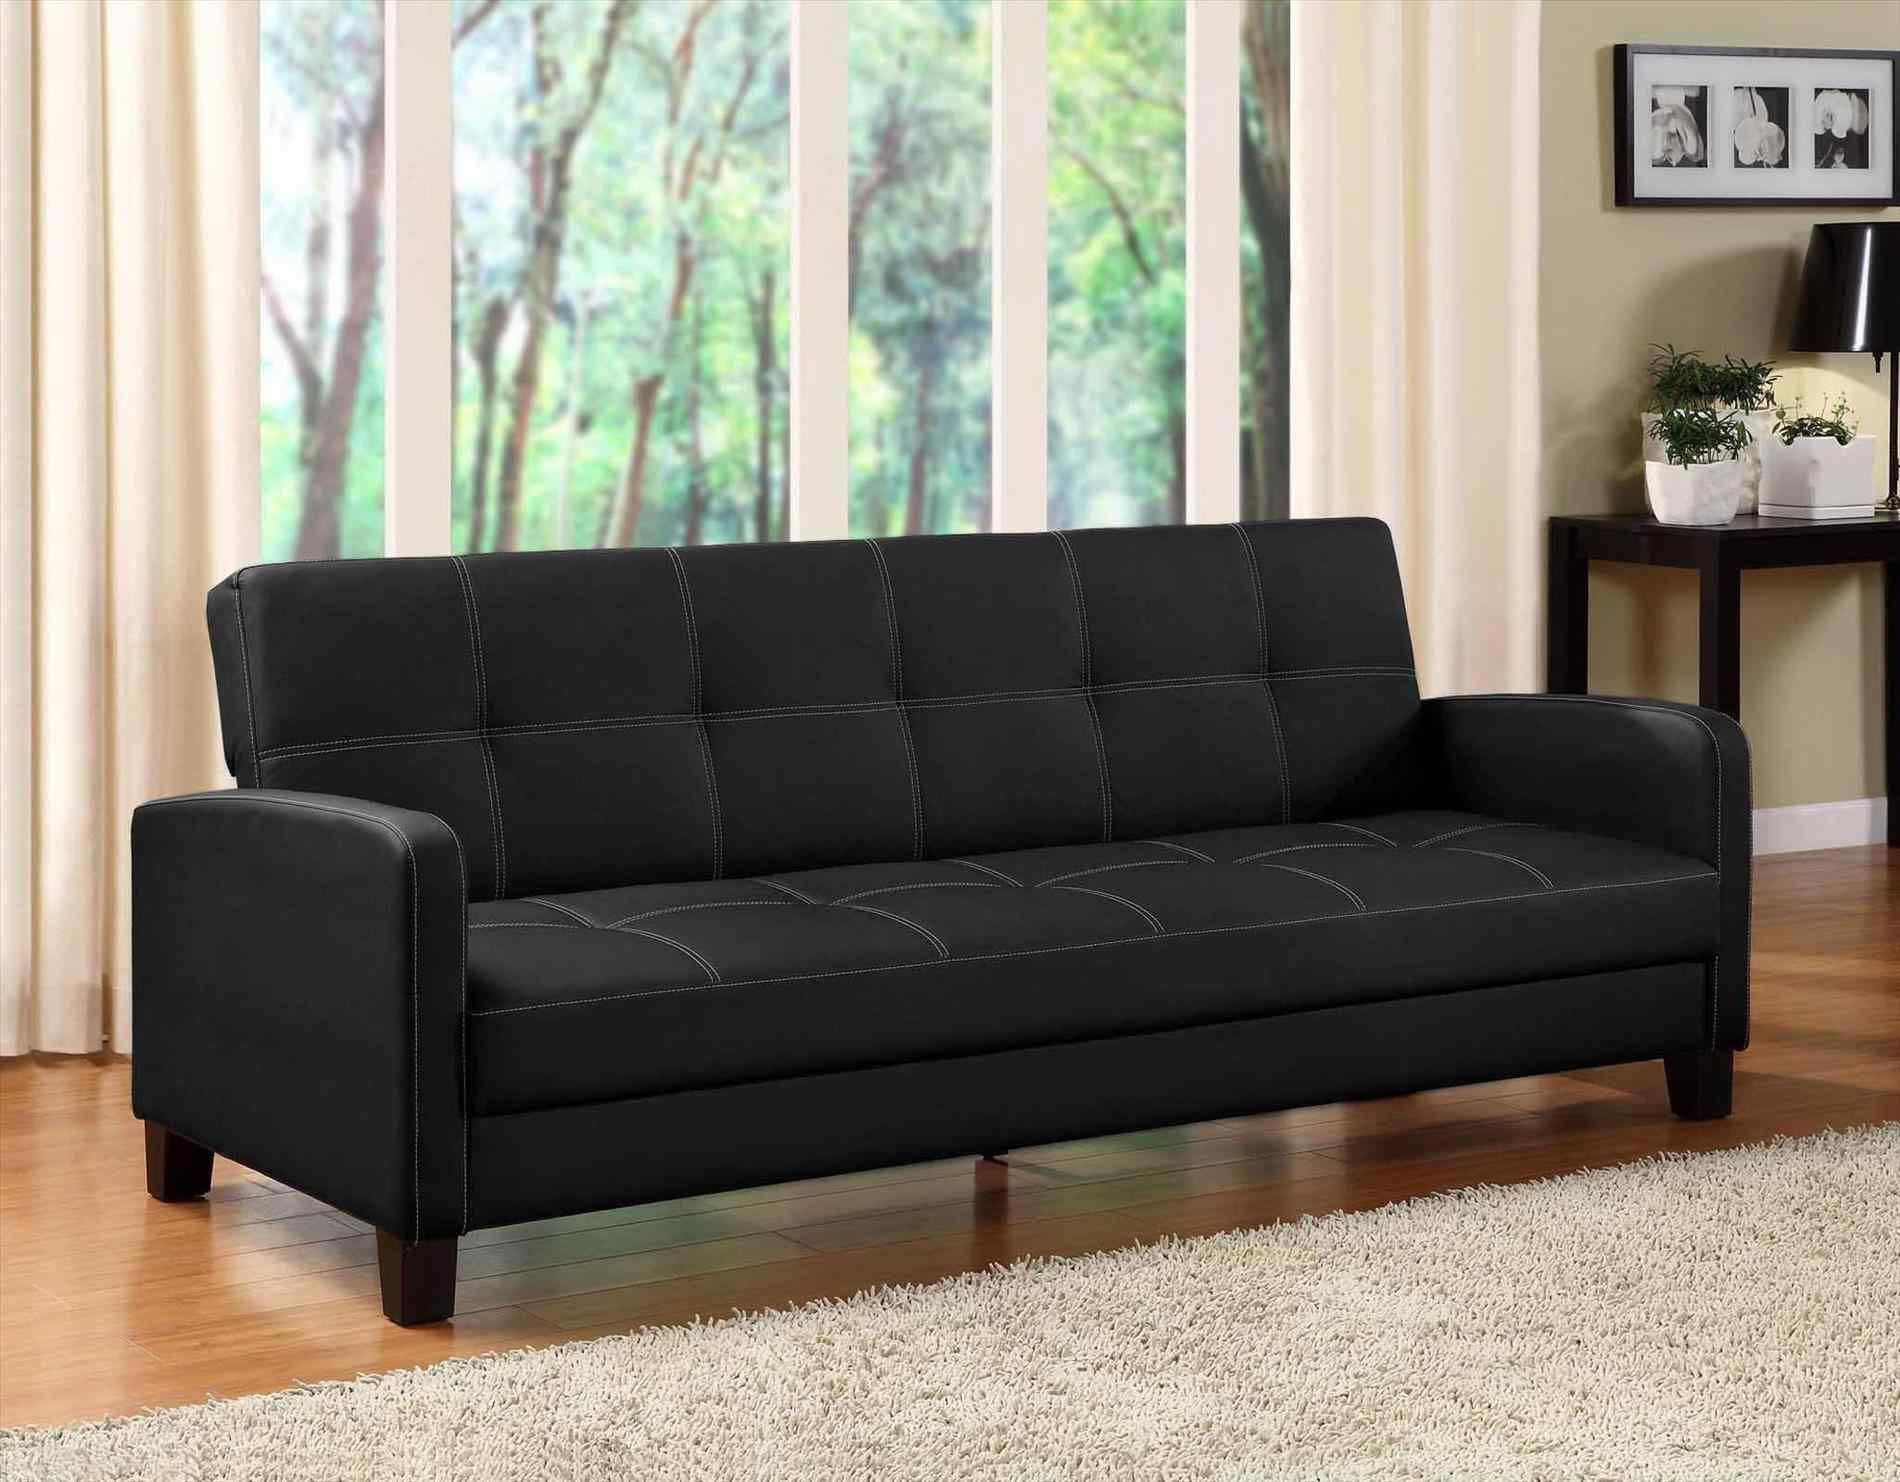 Gentil Spaces Shop Sleeper Sofas Without Bars For Sale Living Spaces  Ansugallerycom Sofa Design Ansugallerycom Sleeper Sofas Without Bars Sofa  Design Benchcraft ...